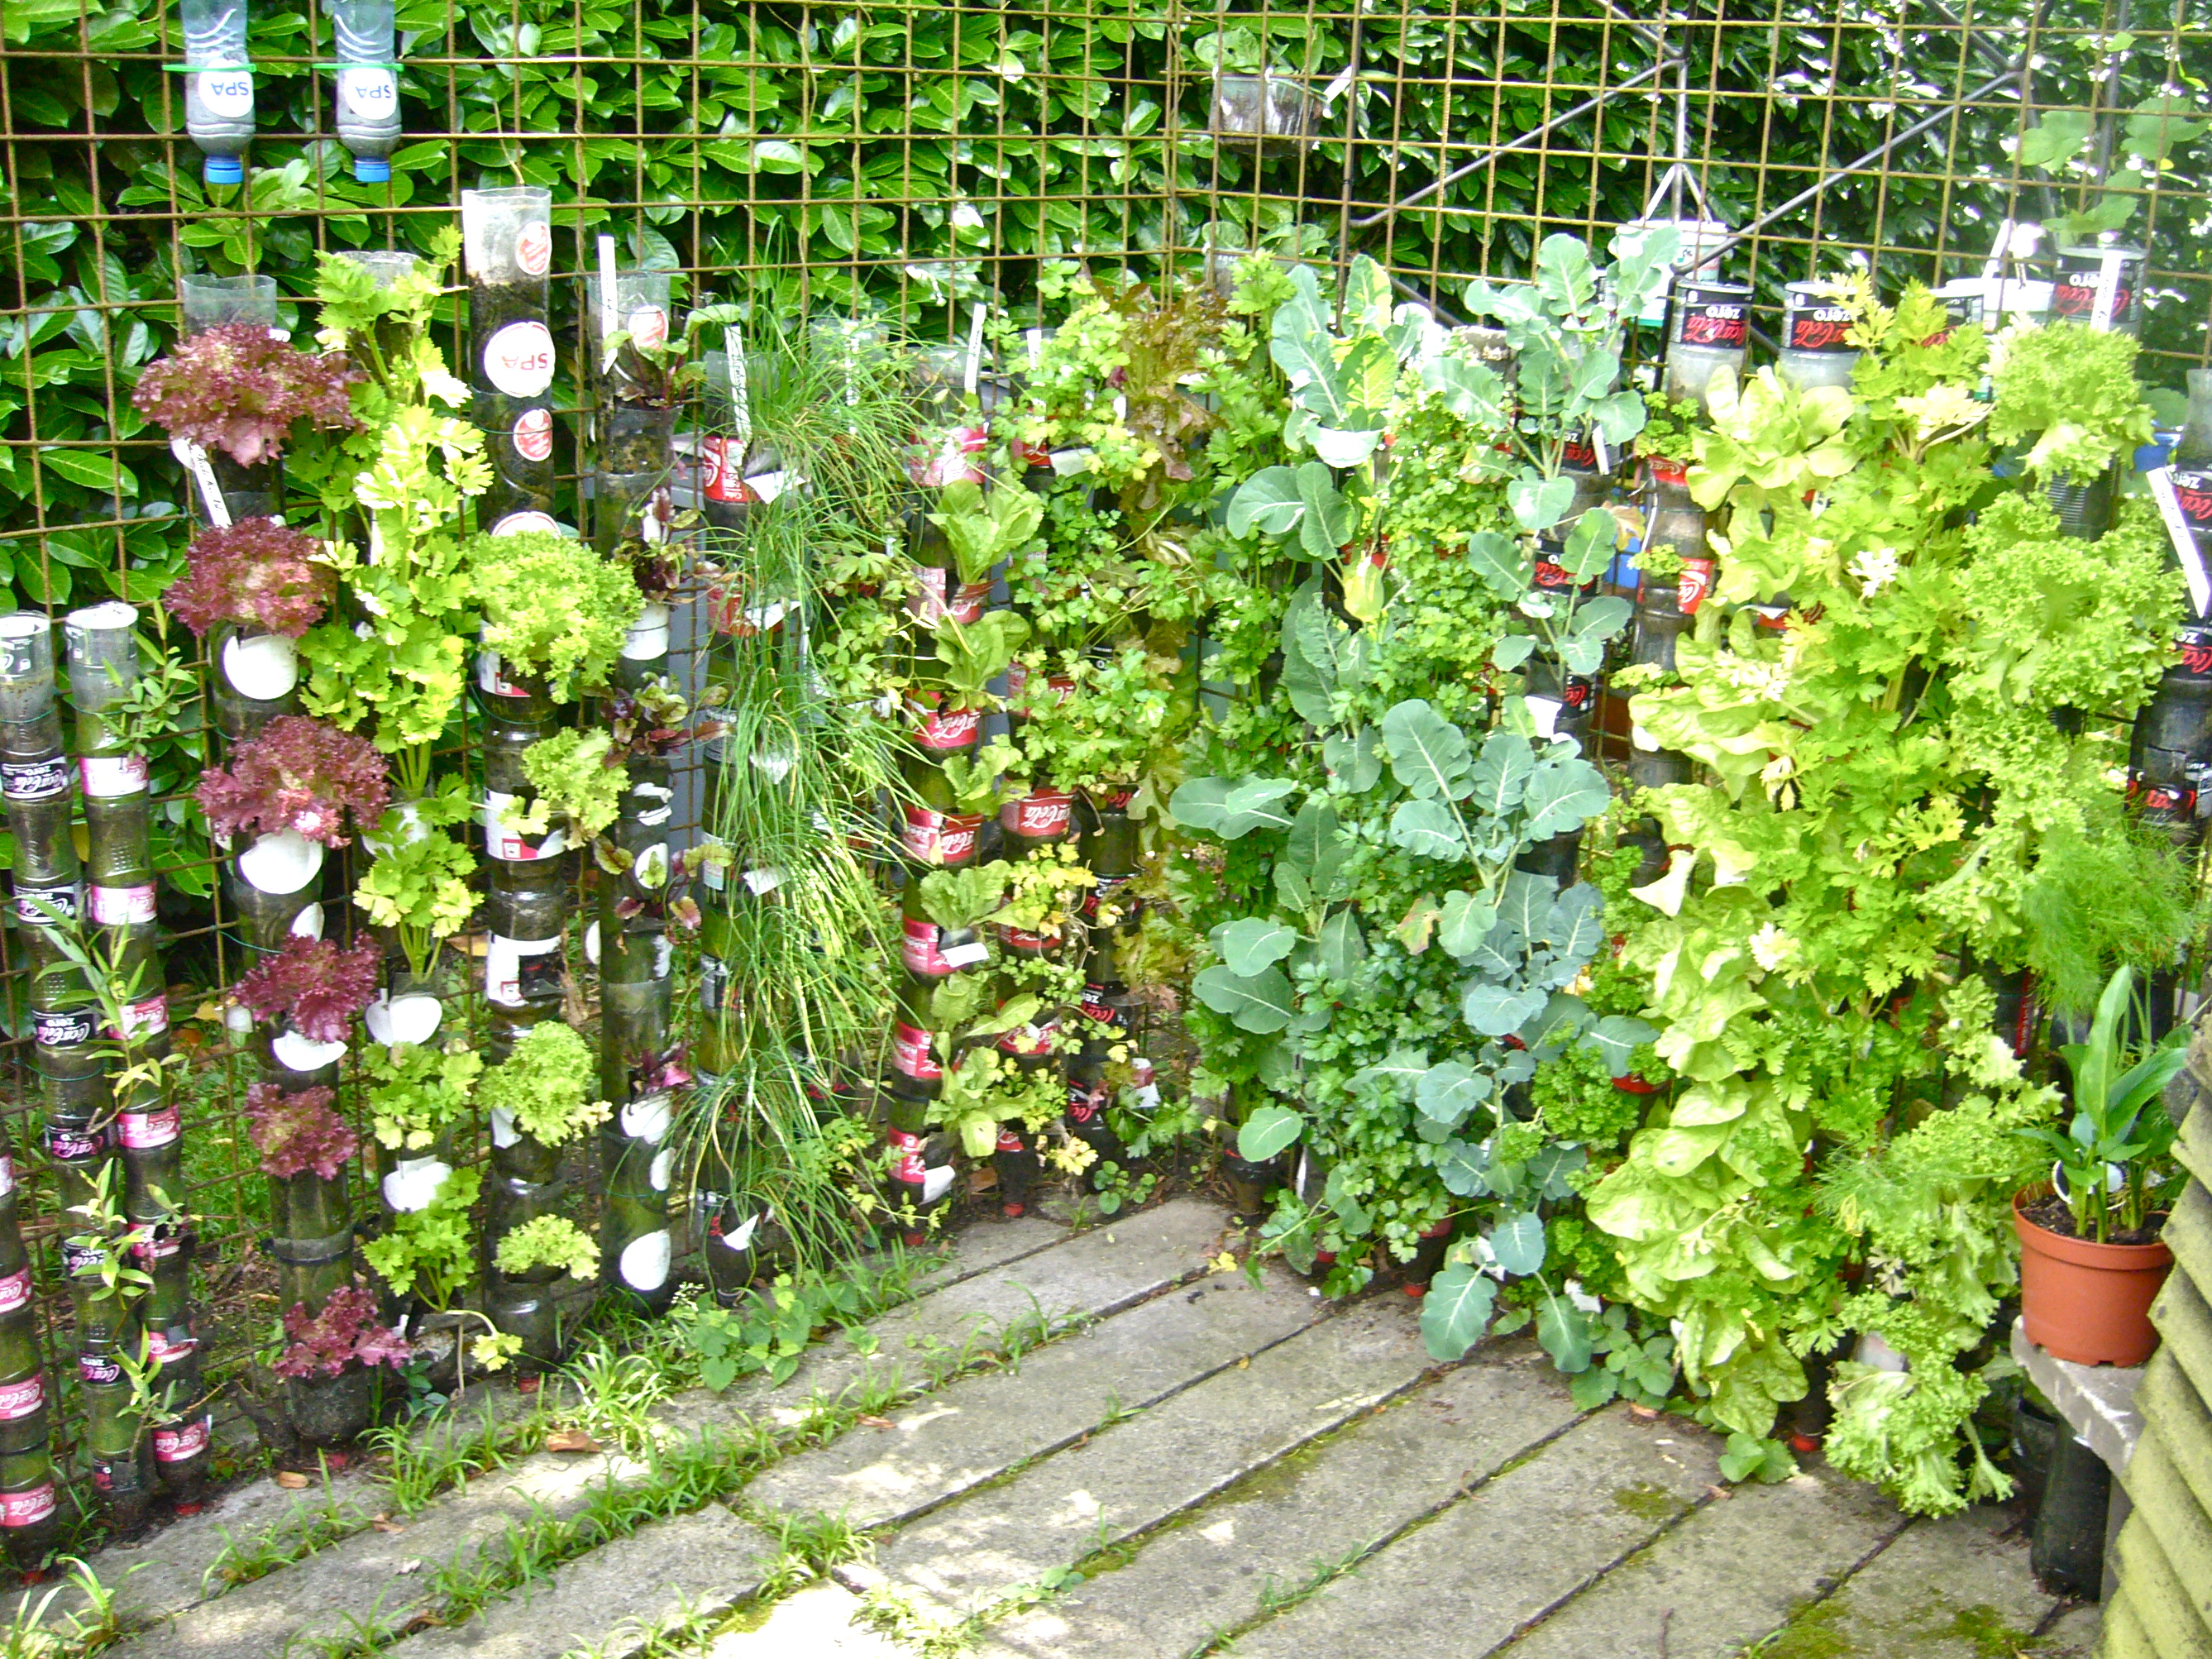 Vertical gardening desertification for A small garden